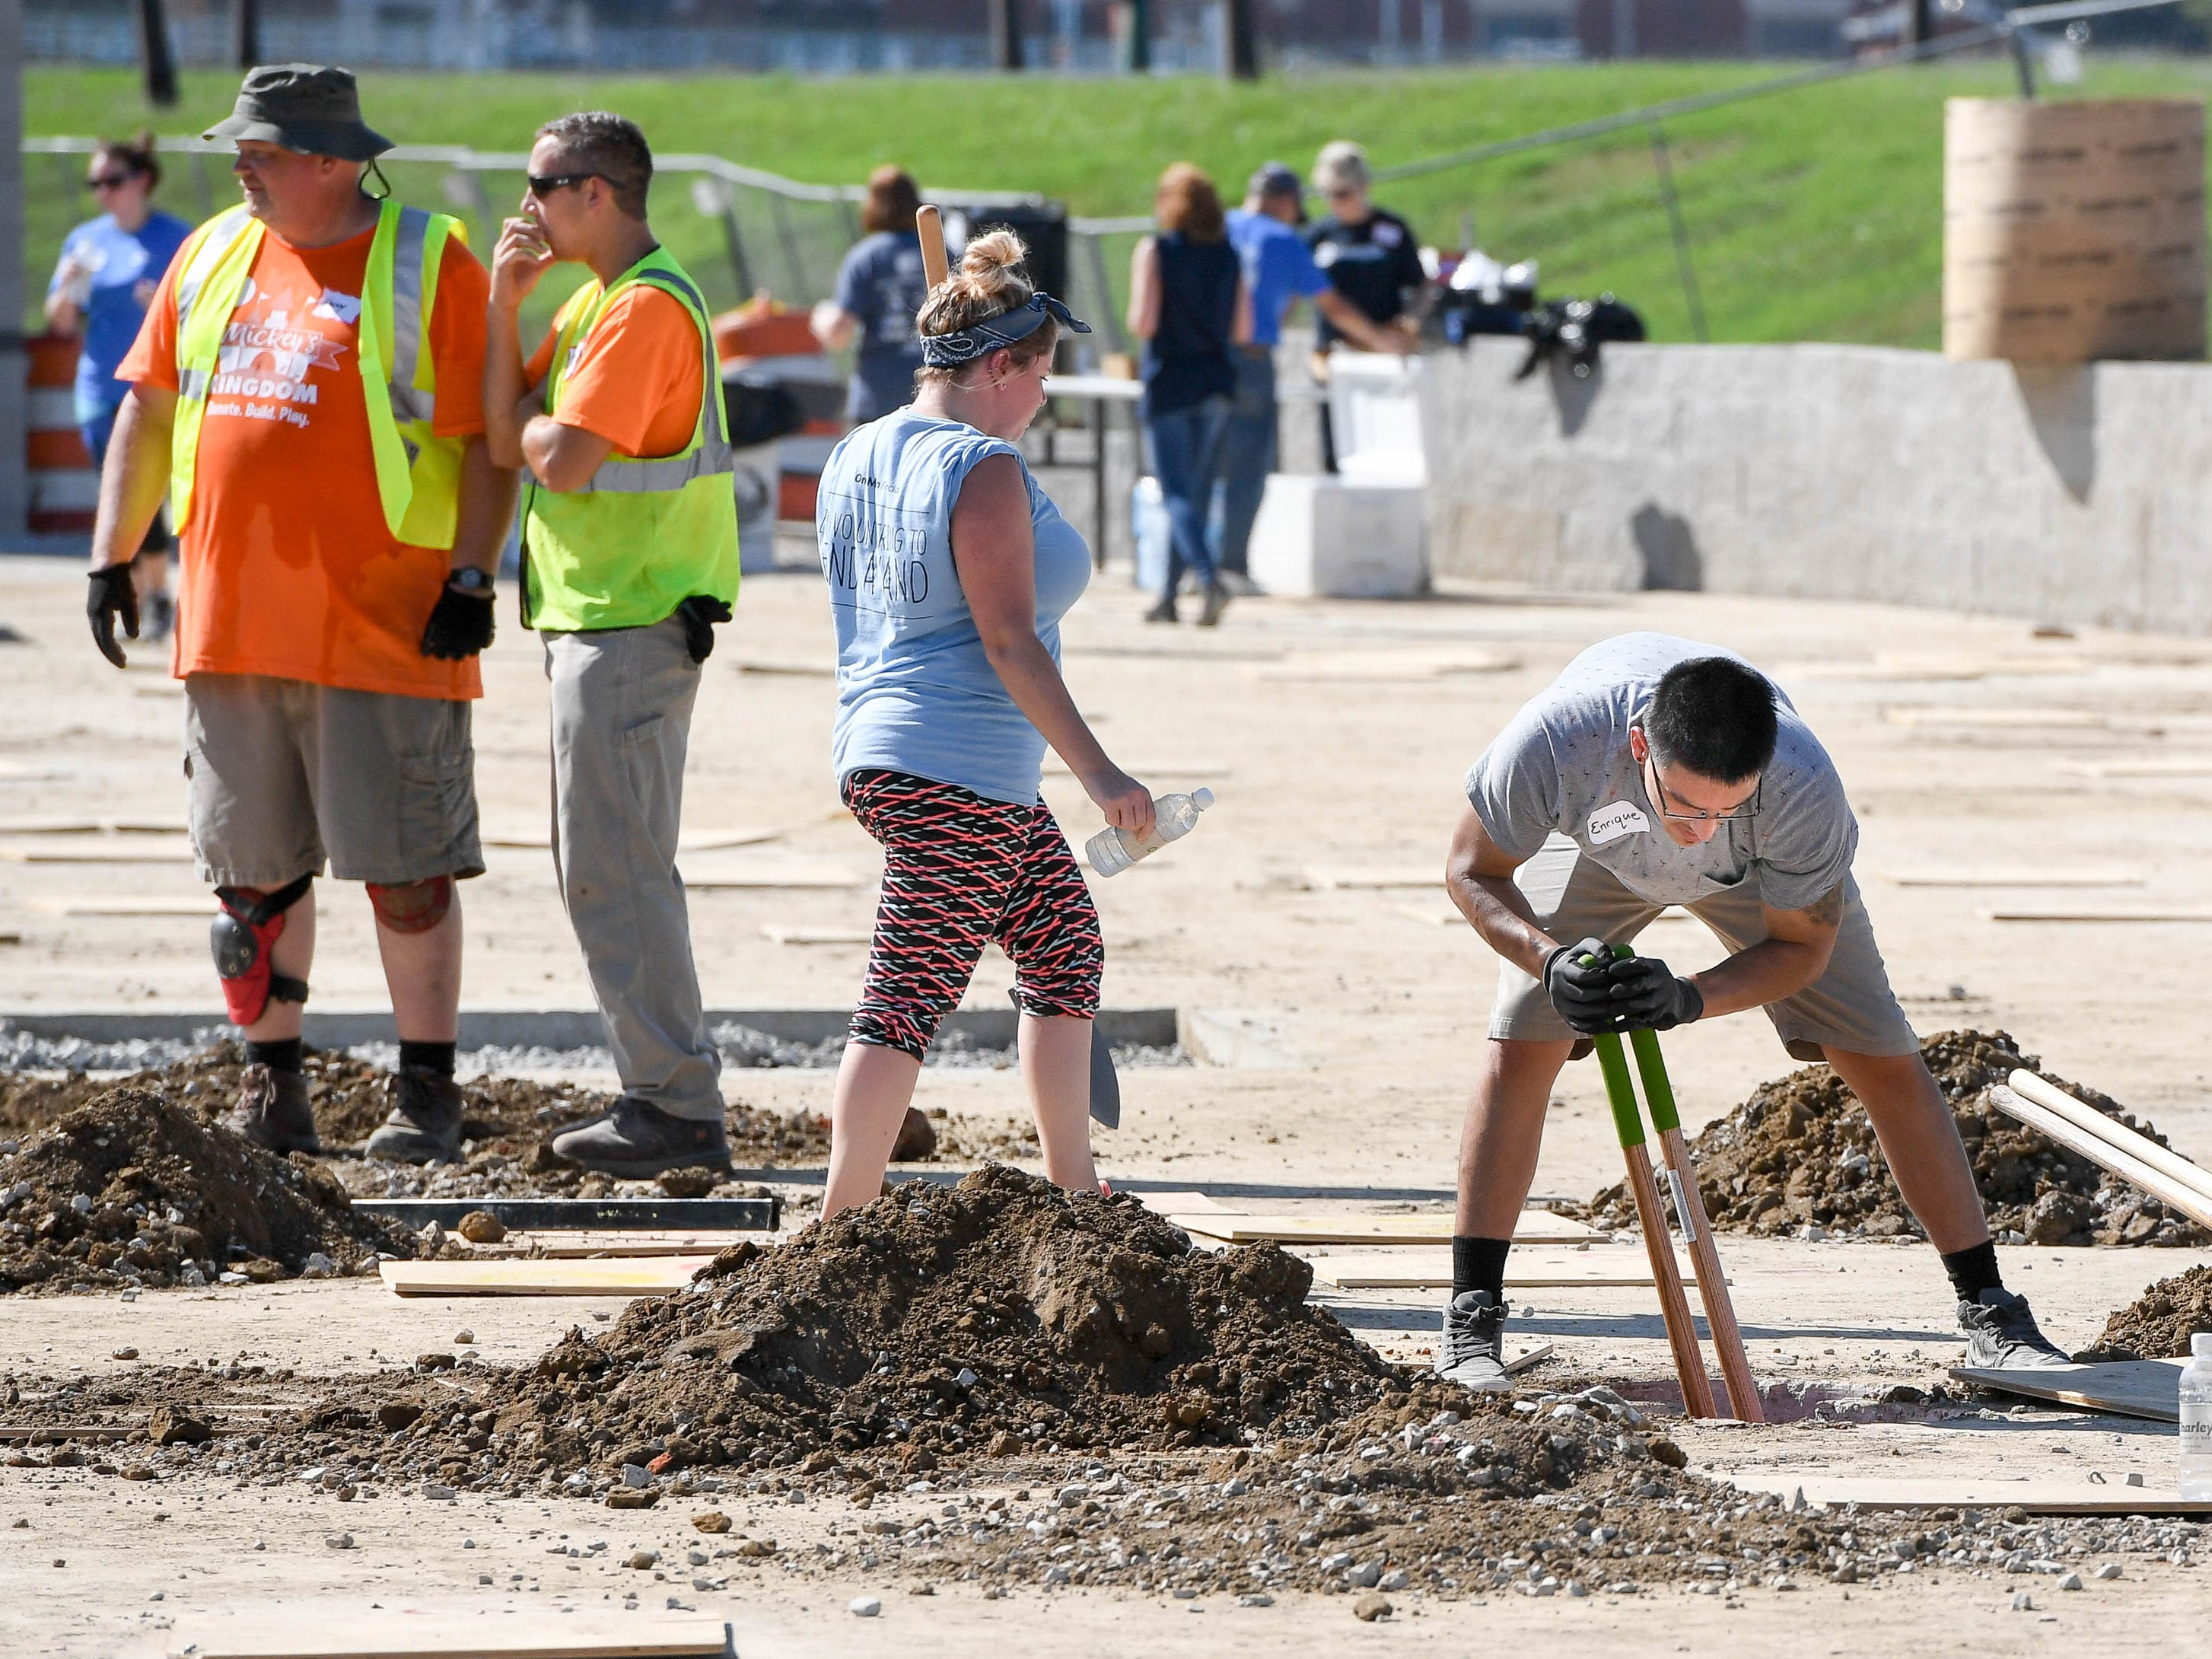 Enrique Alvarez with One Main Financial, righty, helps dig post holes as dozens of volunteers swarm over the Mickey's Kingdom playground under construction on the Evansville riverfront Friday, September 14, 2018.